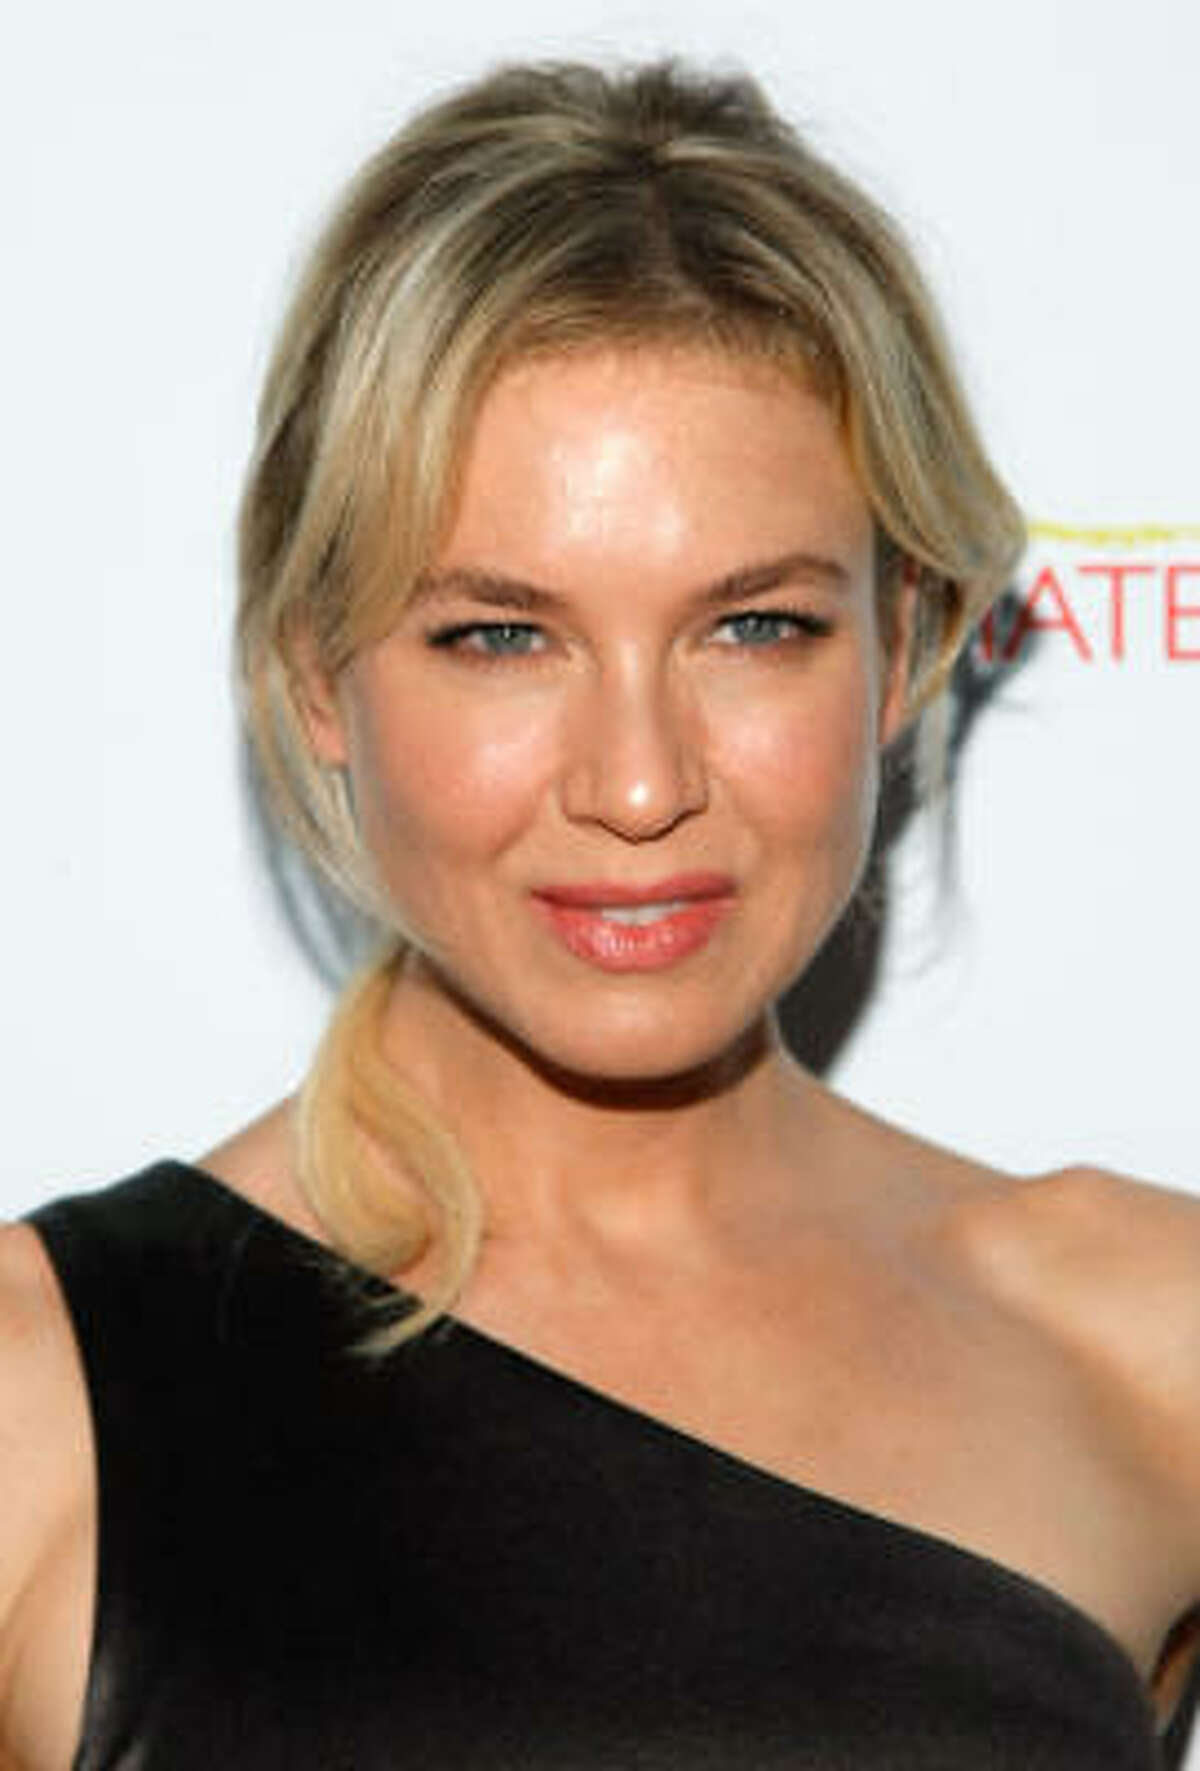 Renee Zellweger This hometown girl cheered for the Katy High School Tigers.